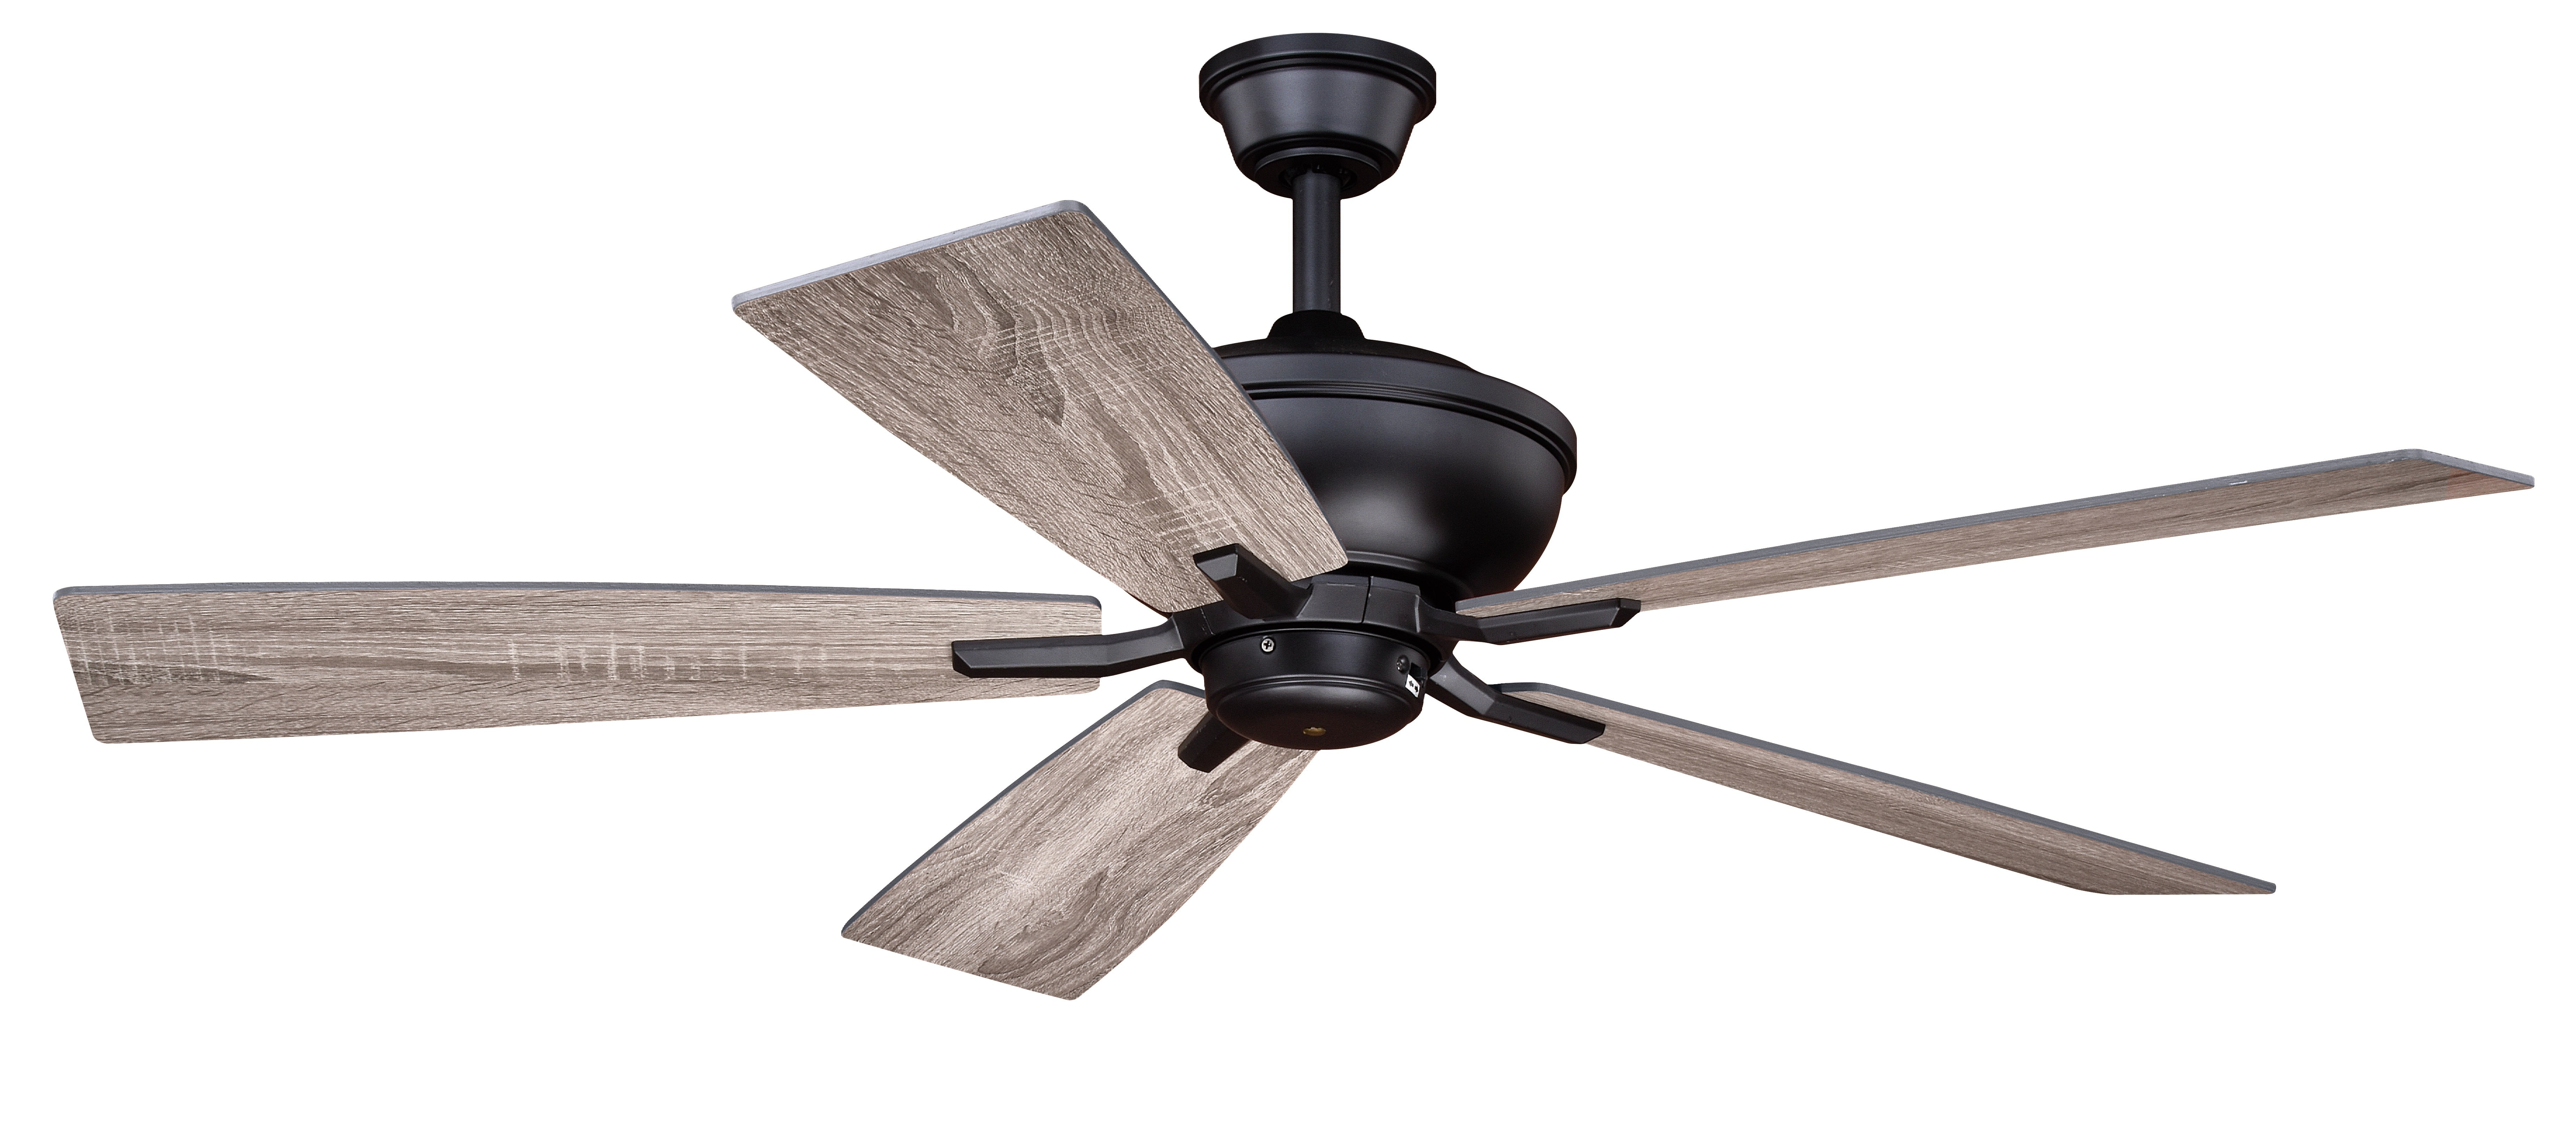 "Well Known 52"" Hirsch 5 Blade Ceiling Fan With Remote, Light Kit Included Regarding Ravenna 5 Blade Ceiling Fans (View 4 of 20)"